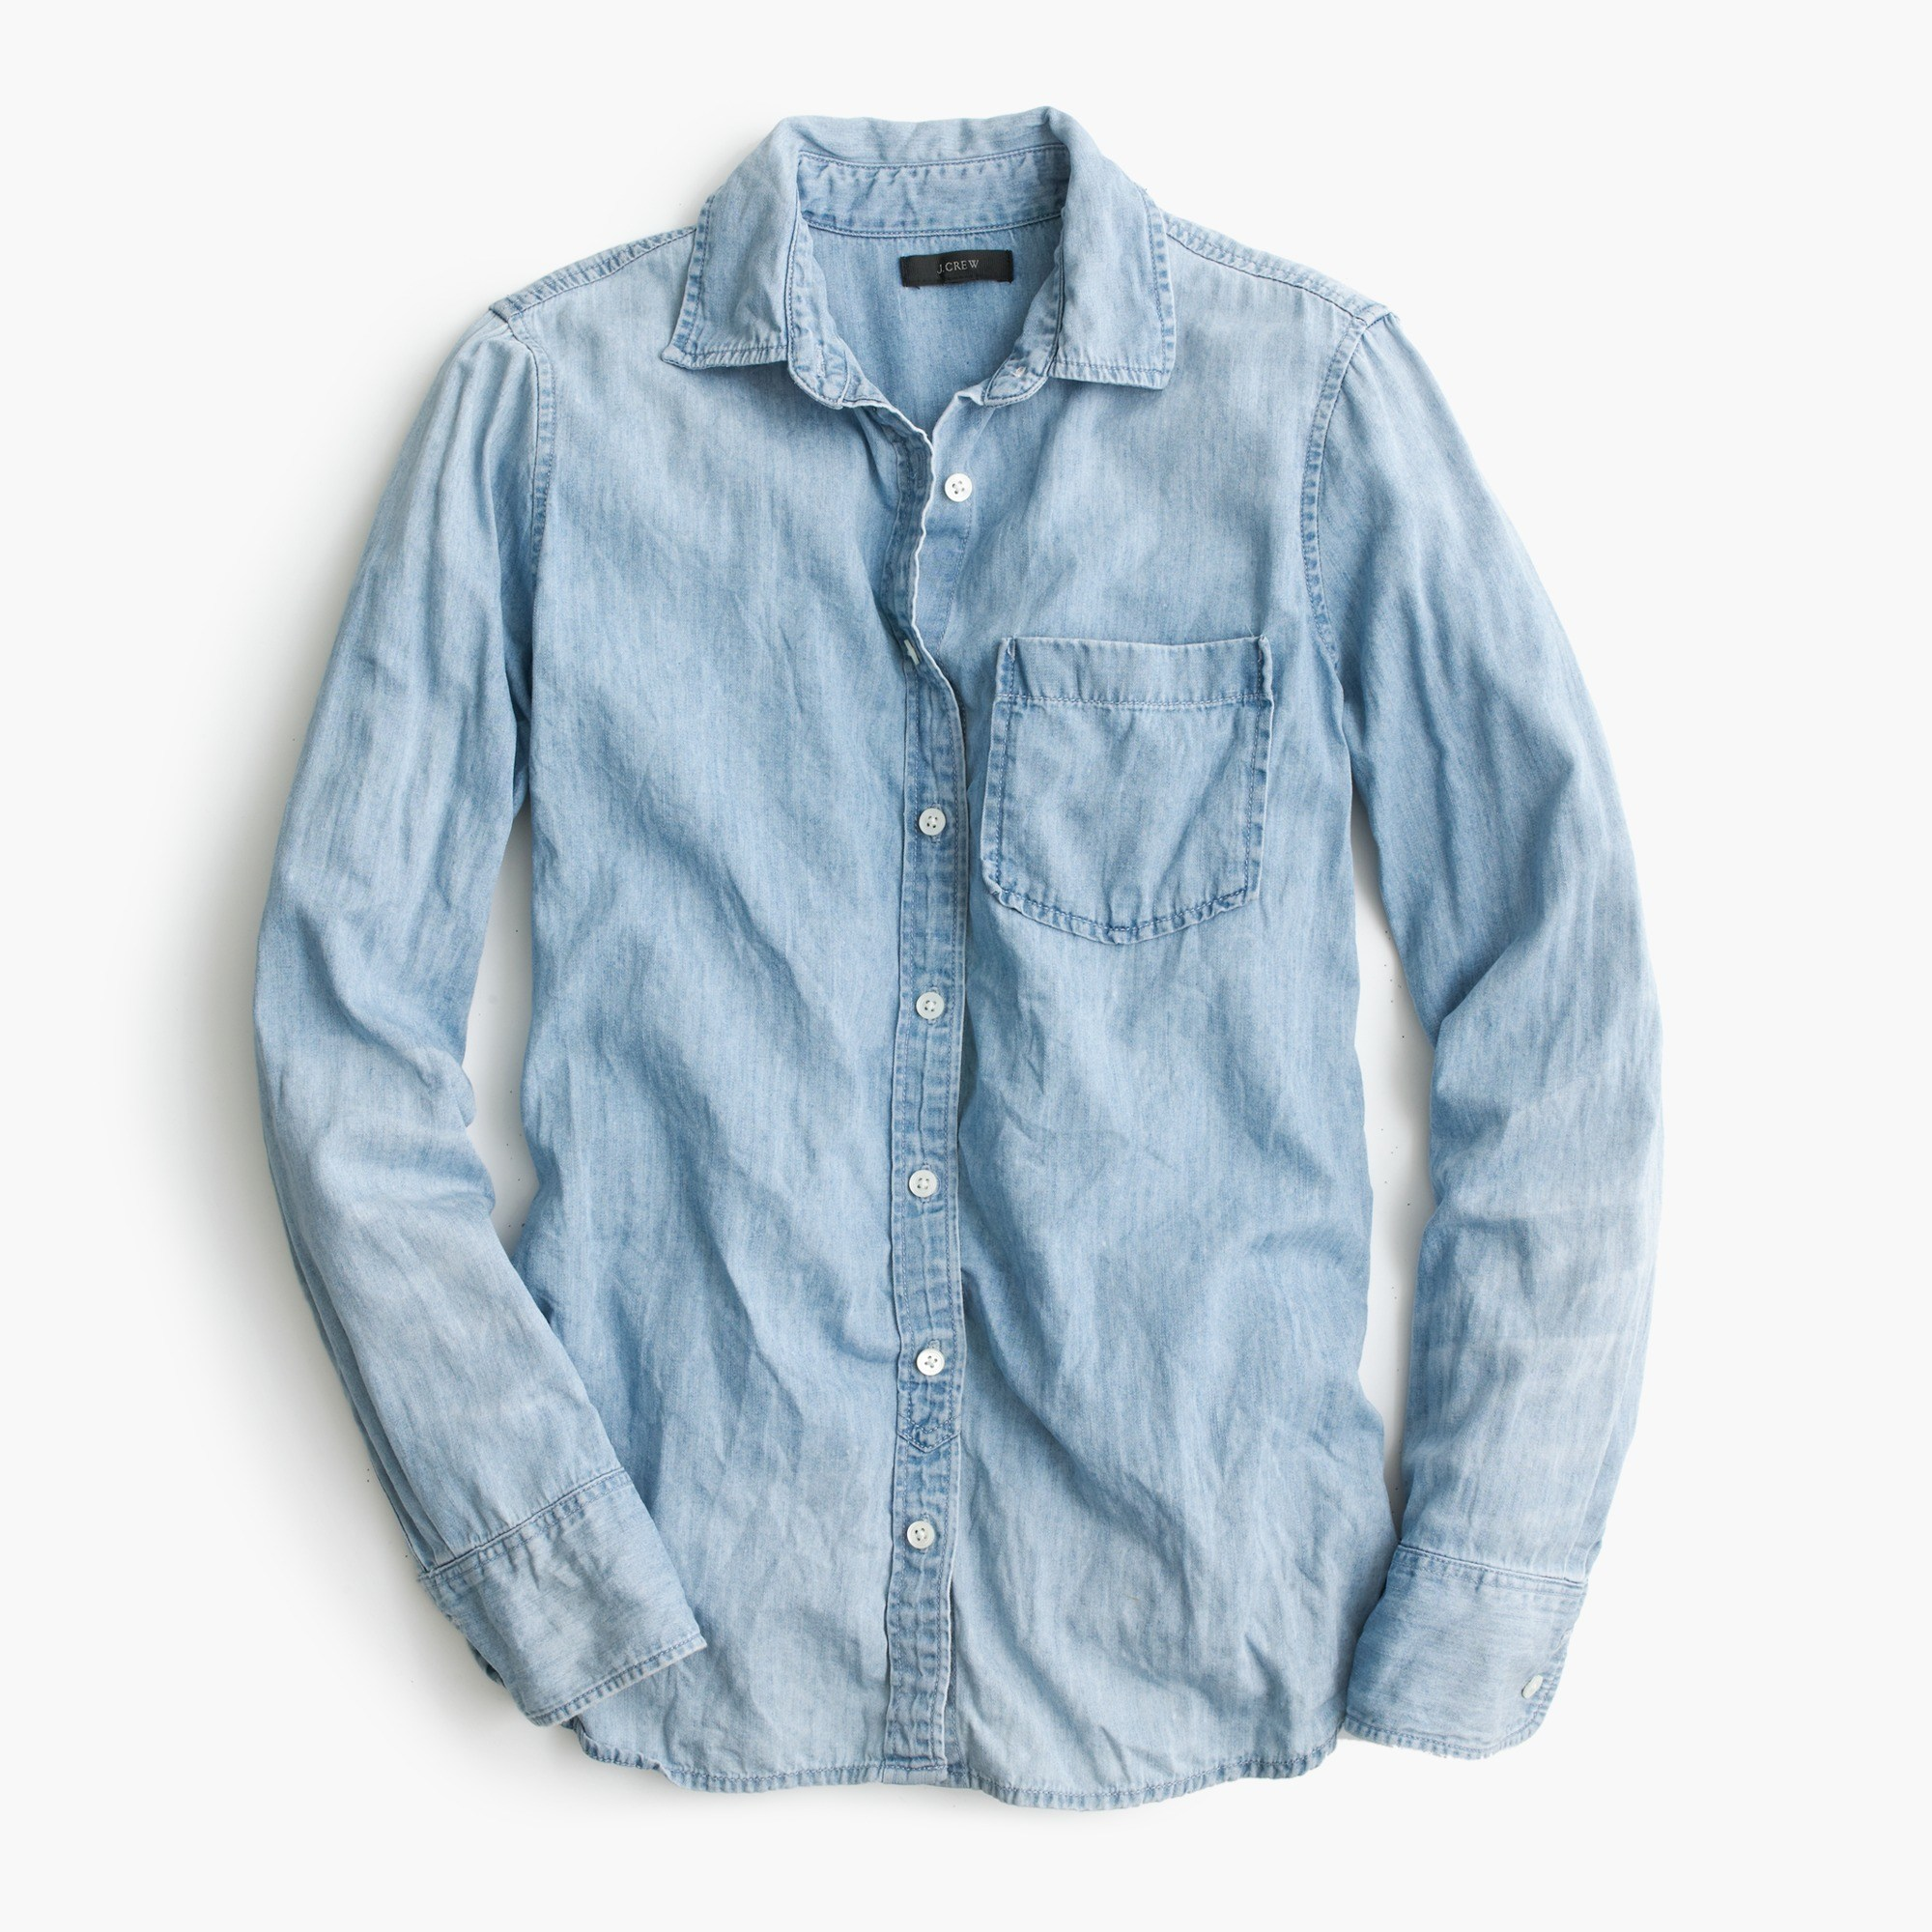 Always Chambray Shirt : Women's Shirts | J.Crew